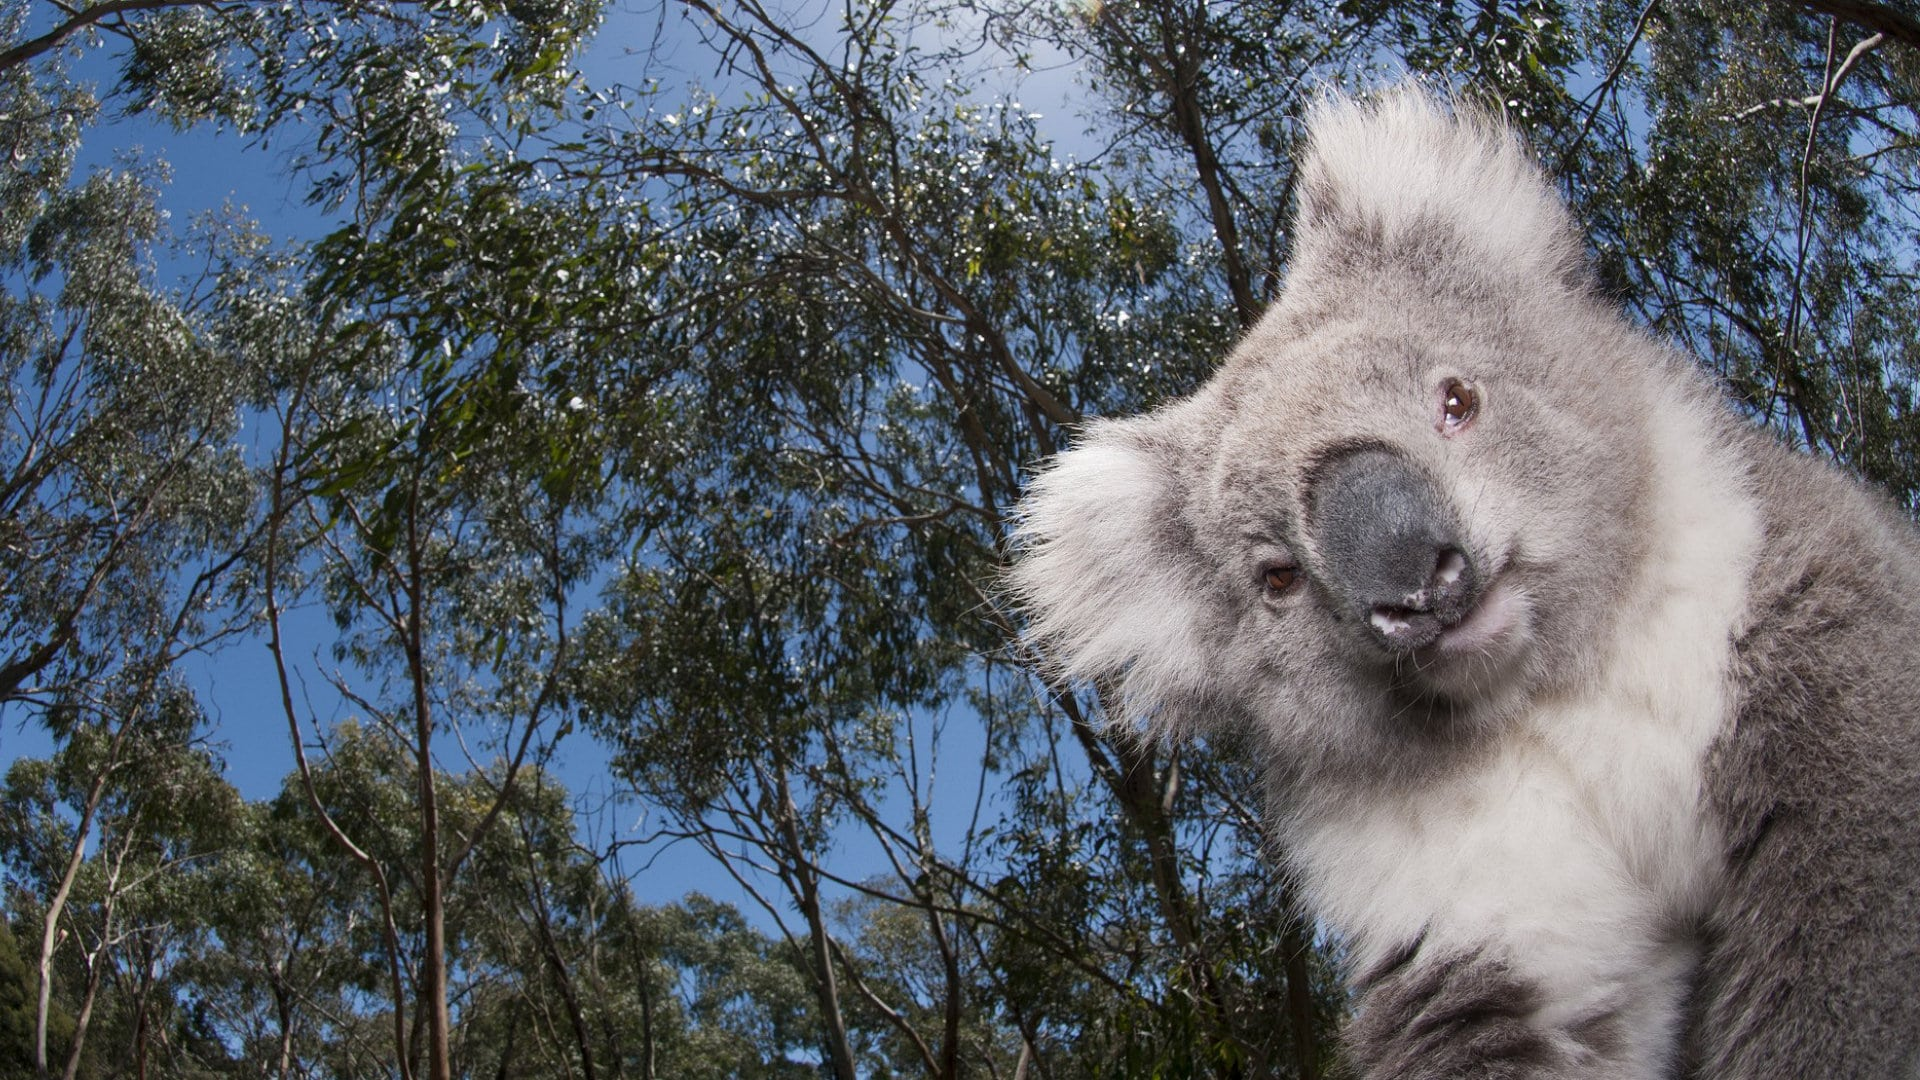 Koala Backgrounds